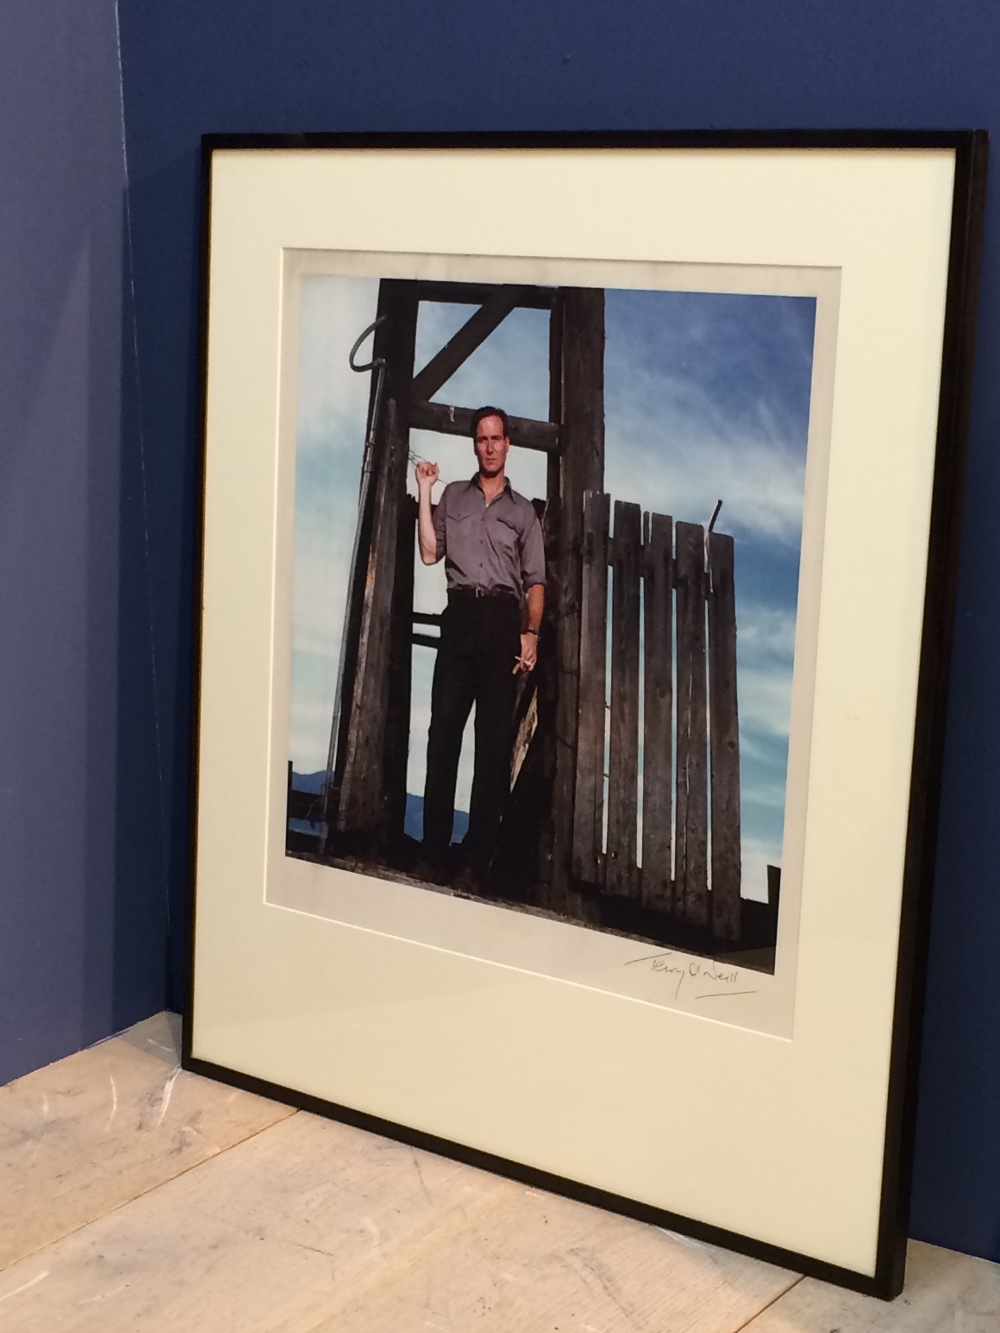 Lot 108 - William Hurt original signed photograph by Terry O'Neill